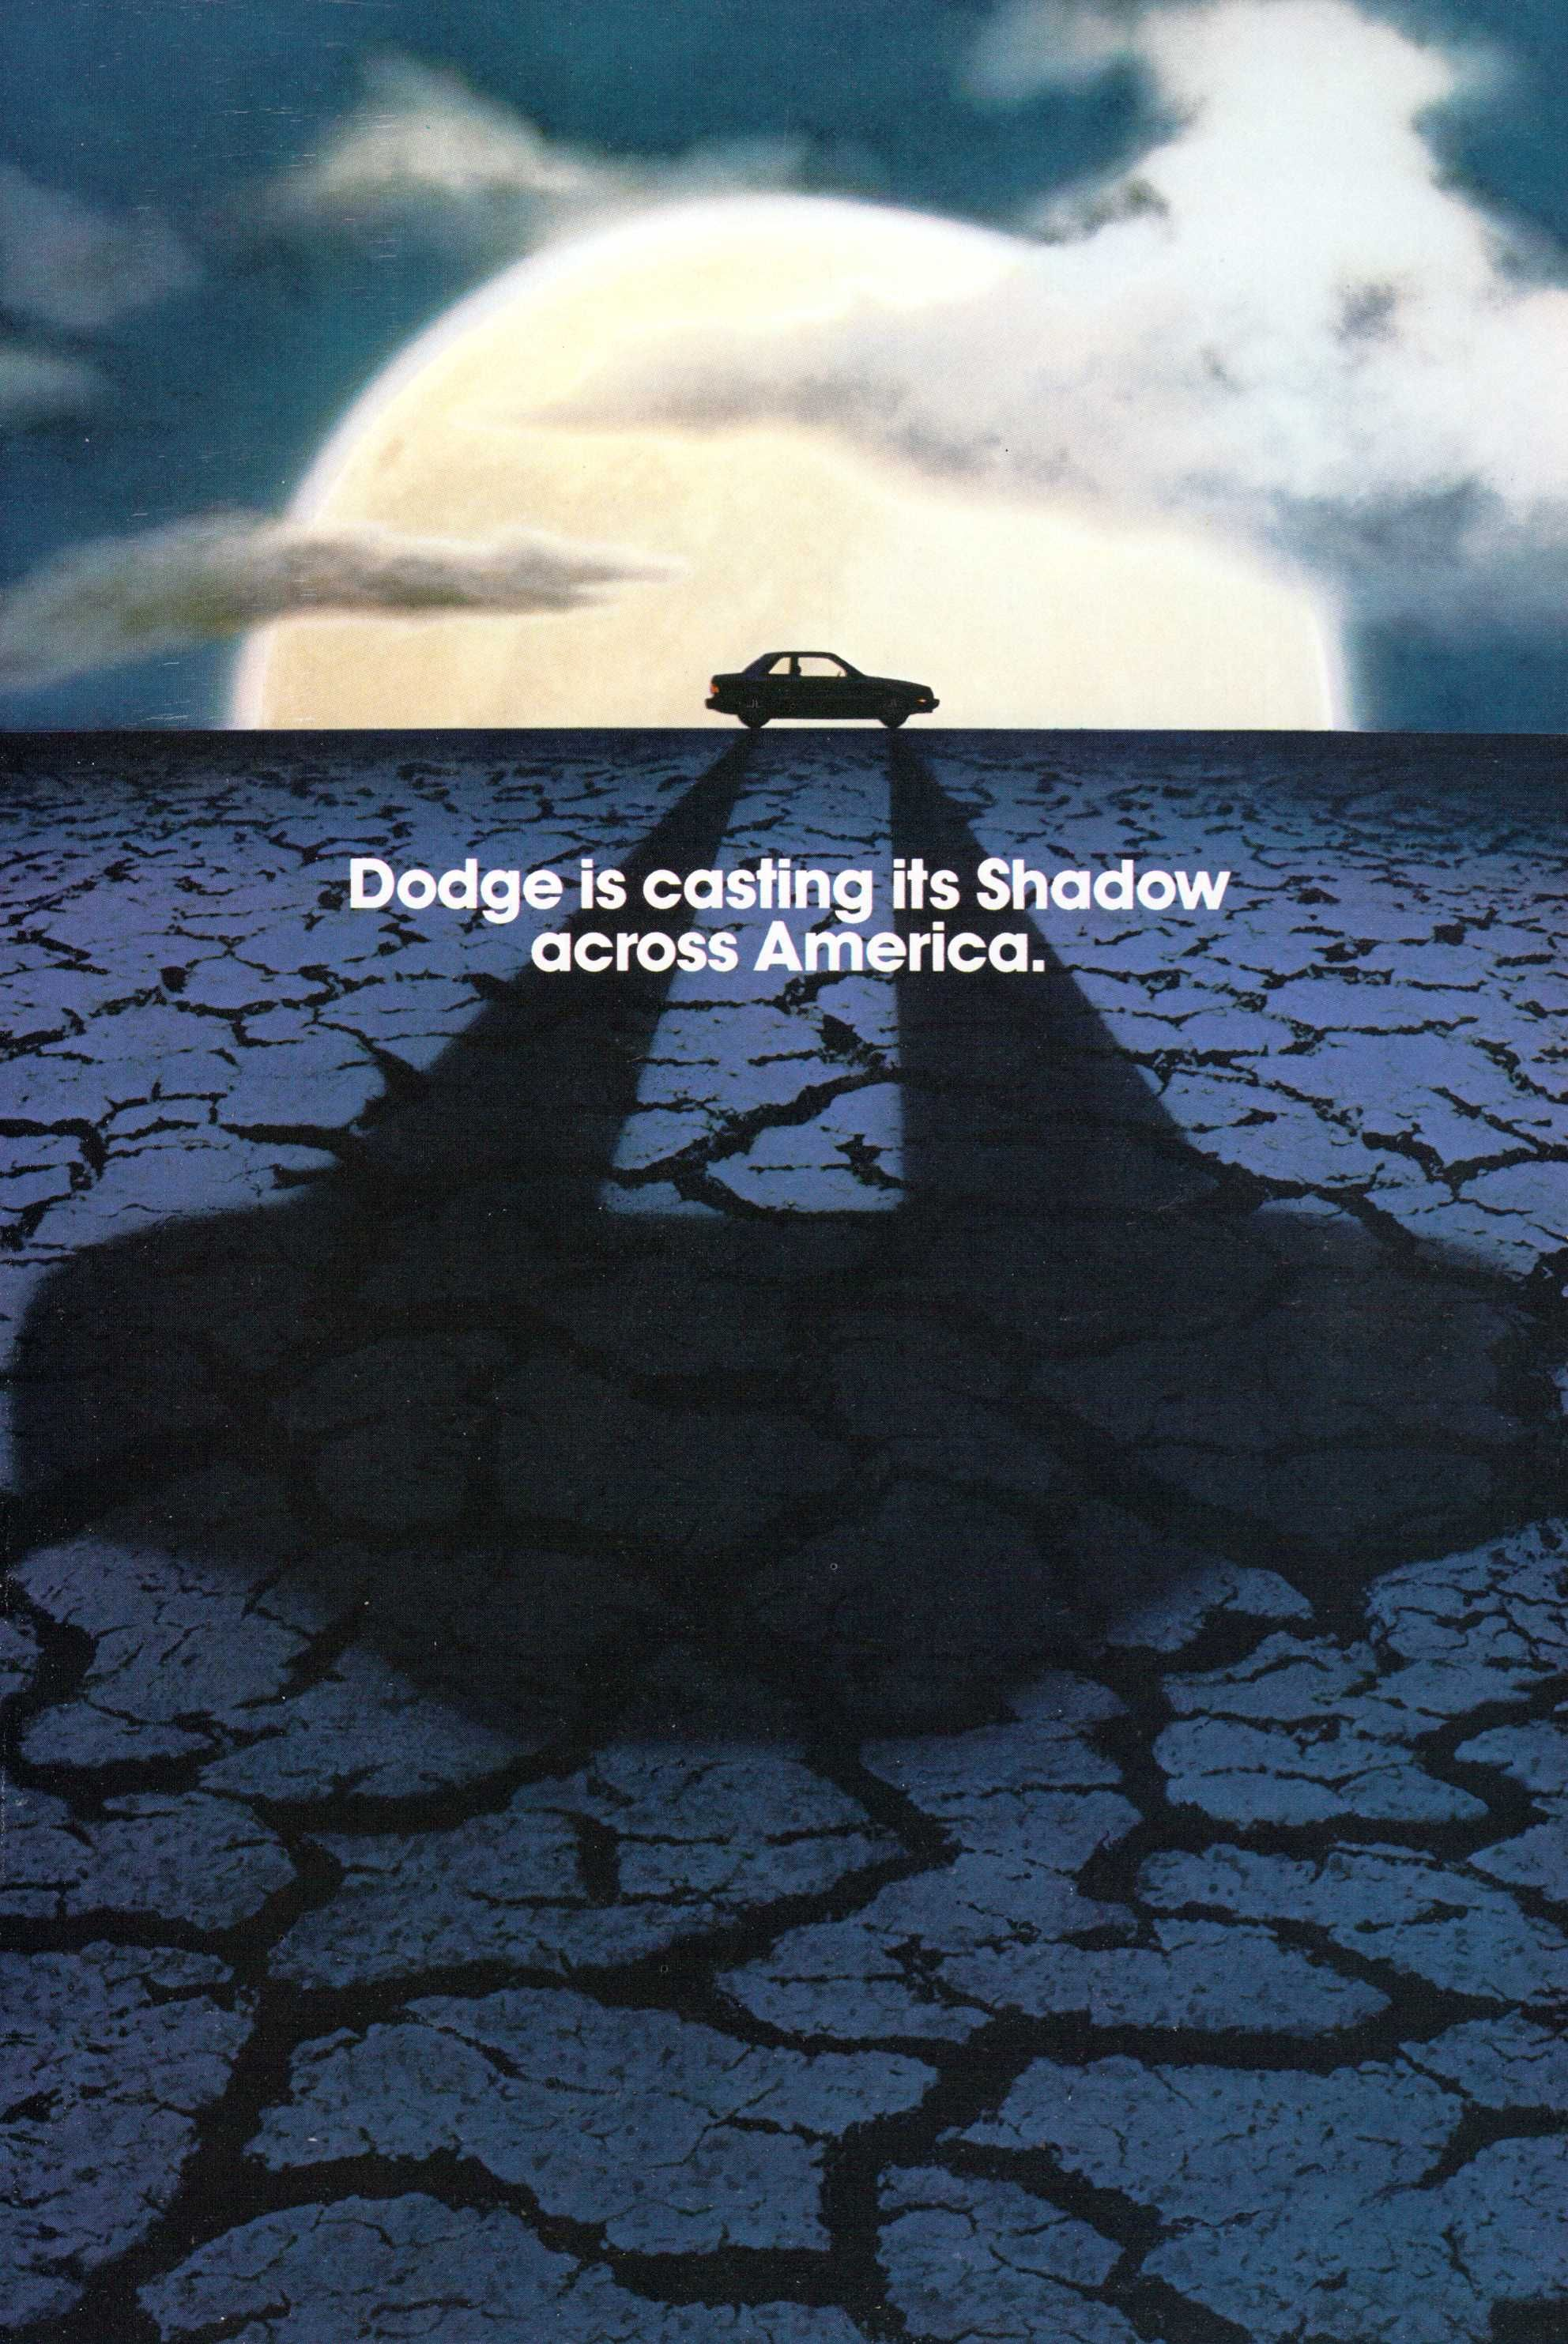 1986 dodge shadow ad 2 from national geographic november